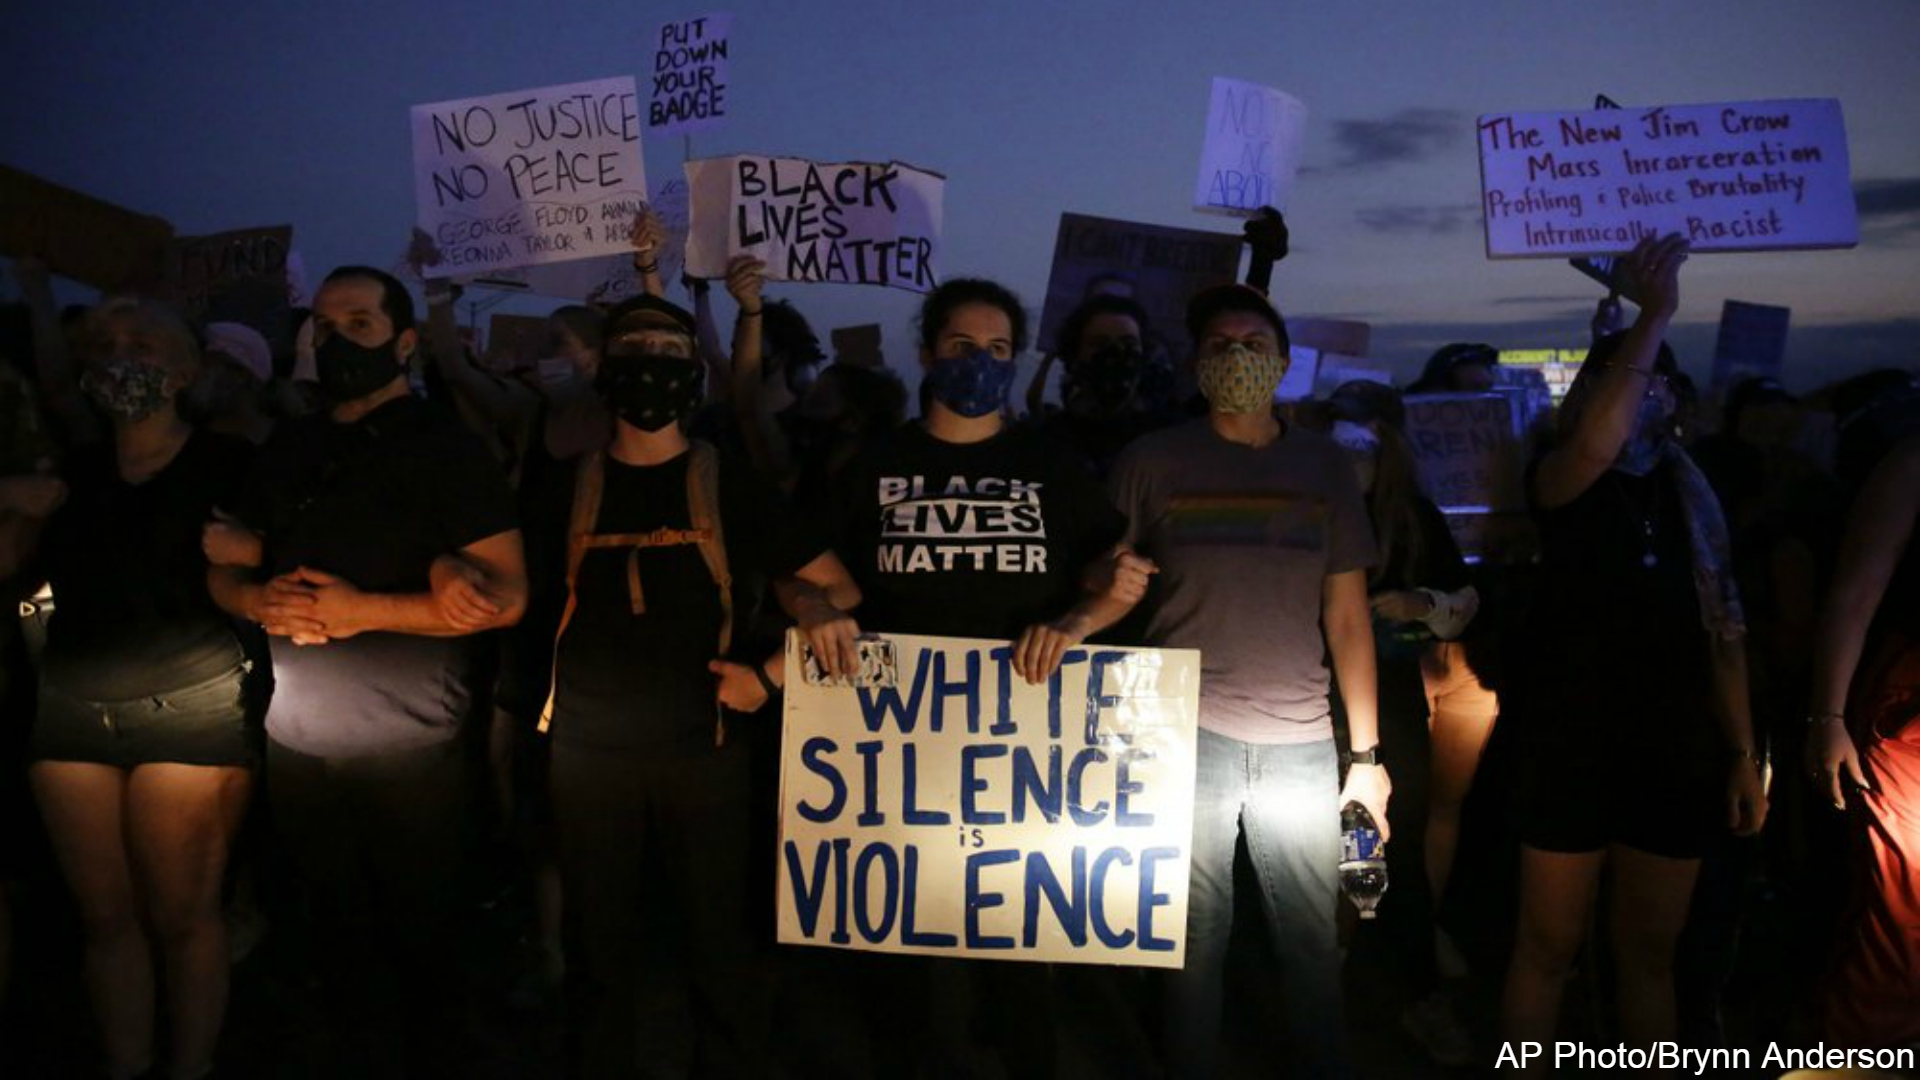 Protesters in US call attention to deaths of more black men | WOODTV.com